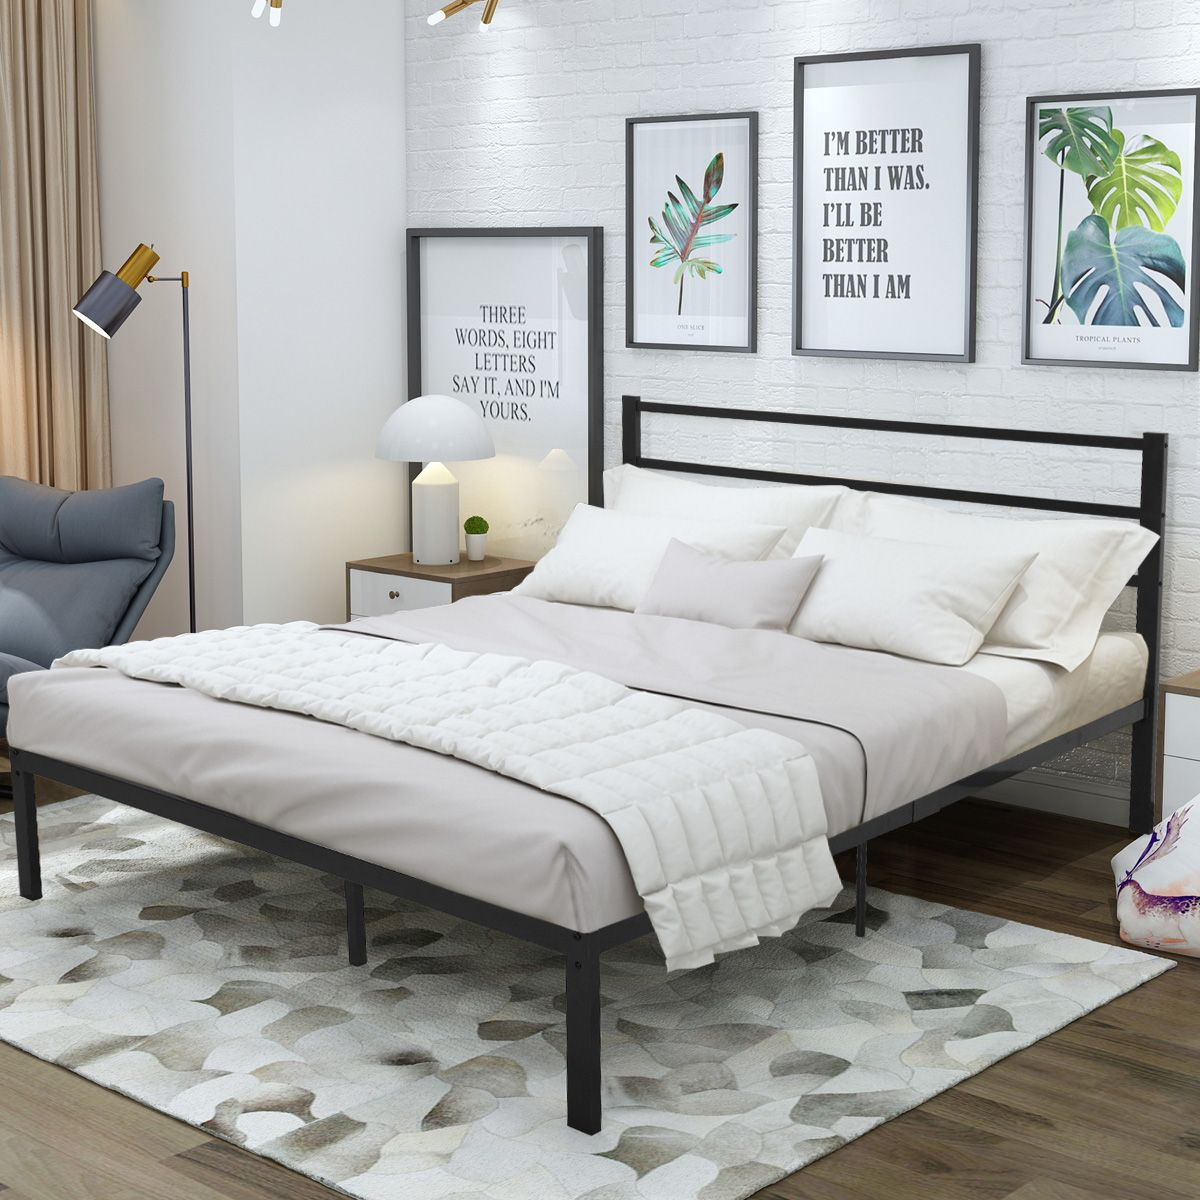 4 Modern Minimalist Bedroom Furniture Sets You Must Have Daily Dream Decor